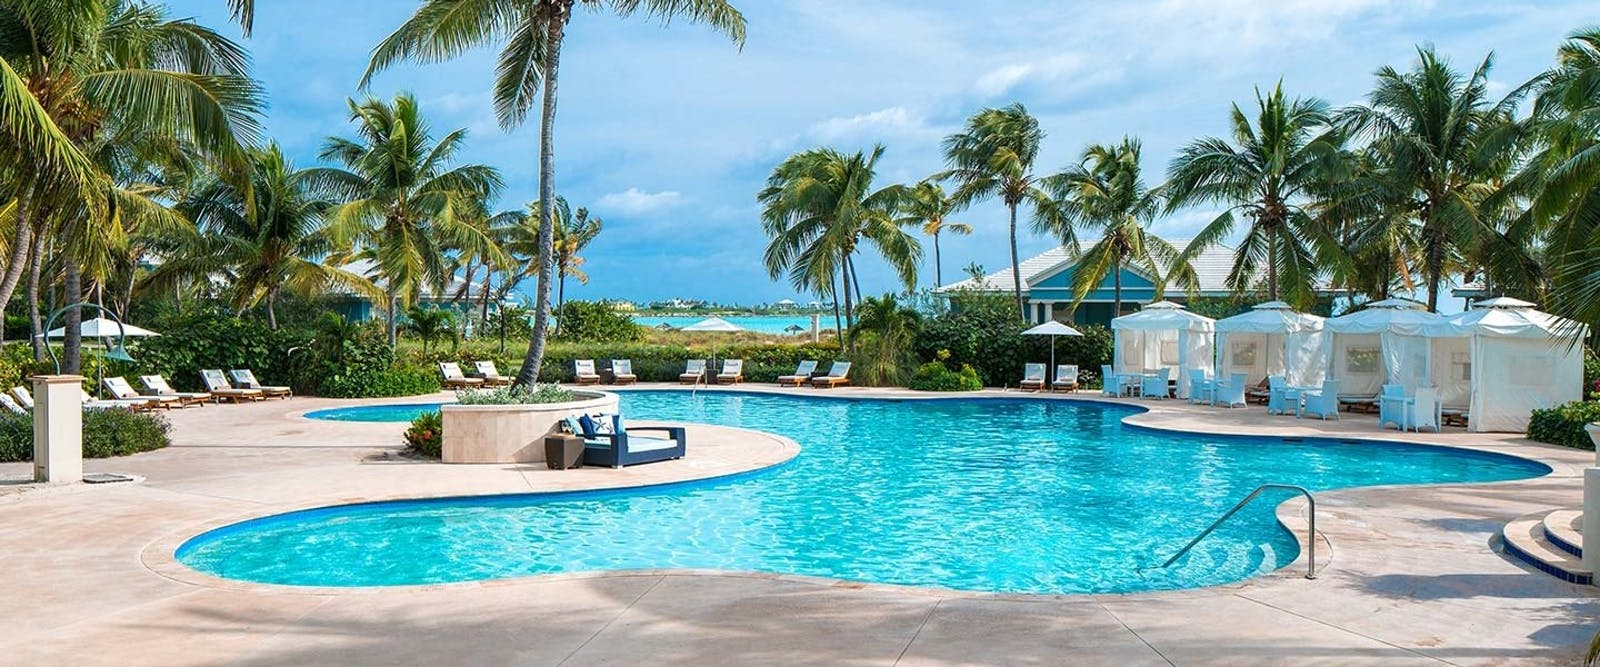 Pool Area at Sandals Emerald Bay Golf, Tennis & Spa Resort, Bahamas, Caribbean